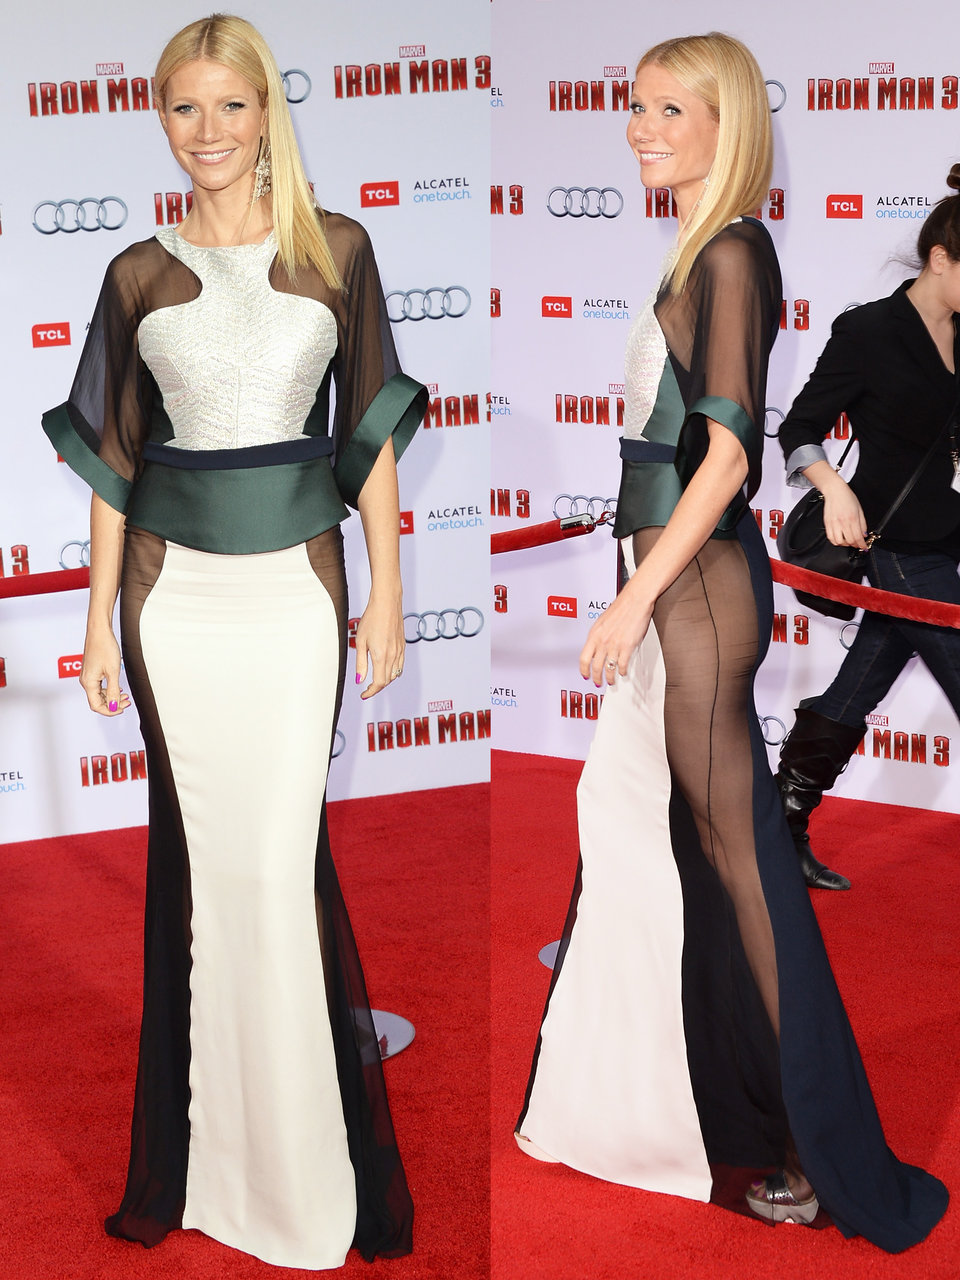 gwyneth paltrow embraced the sheer paneled style at the 2013 premiere of iron man 3